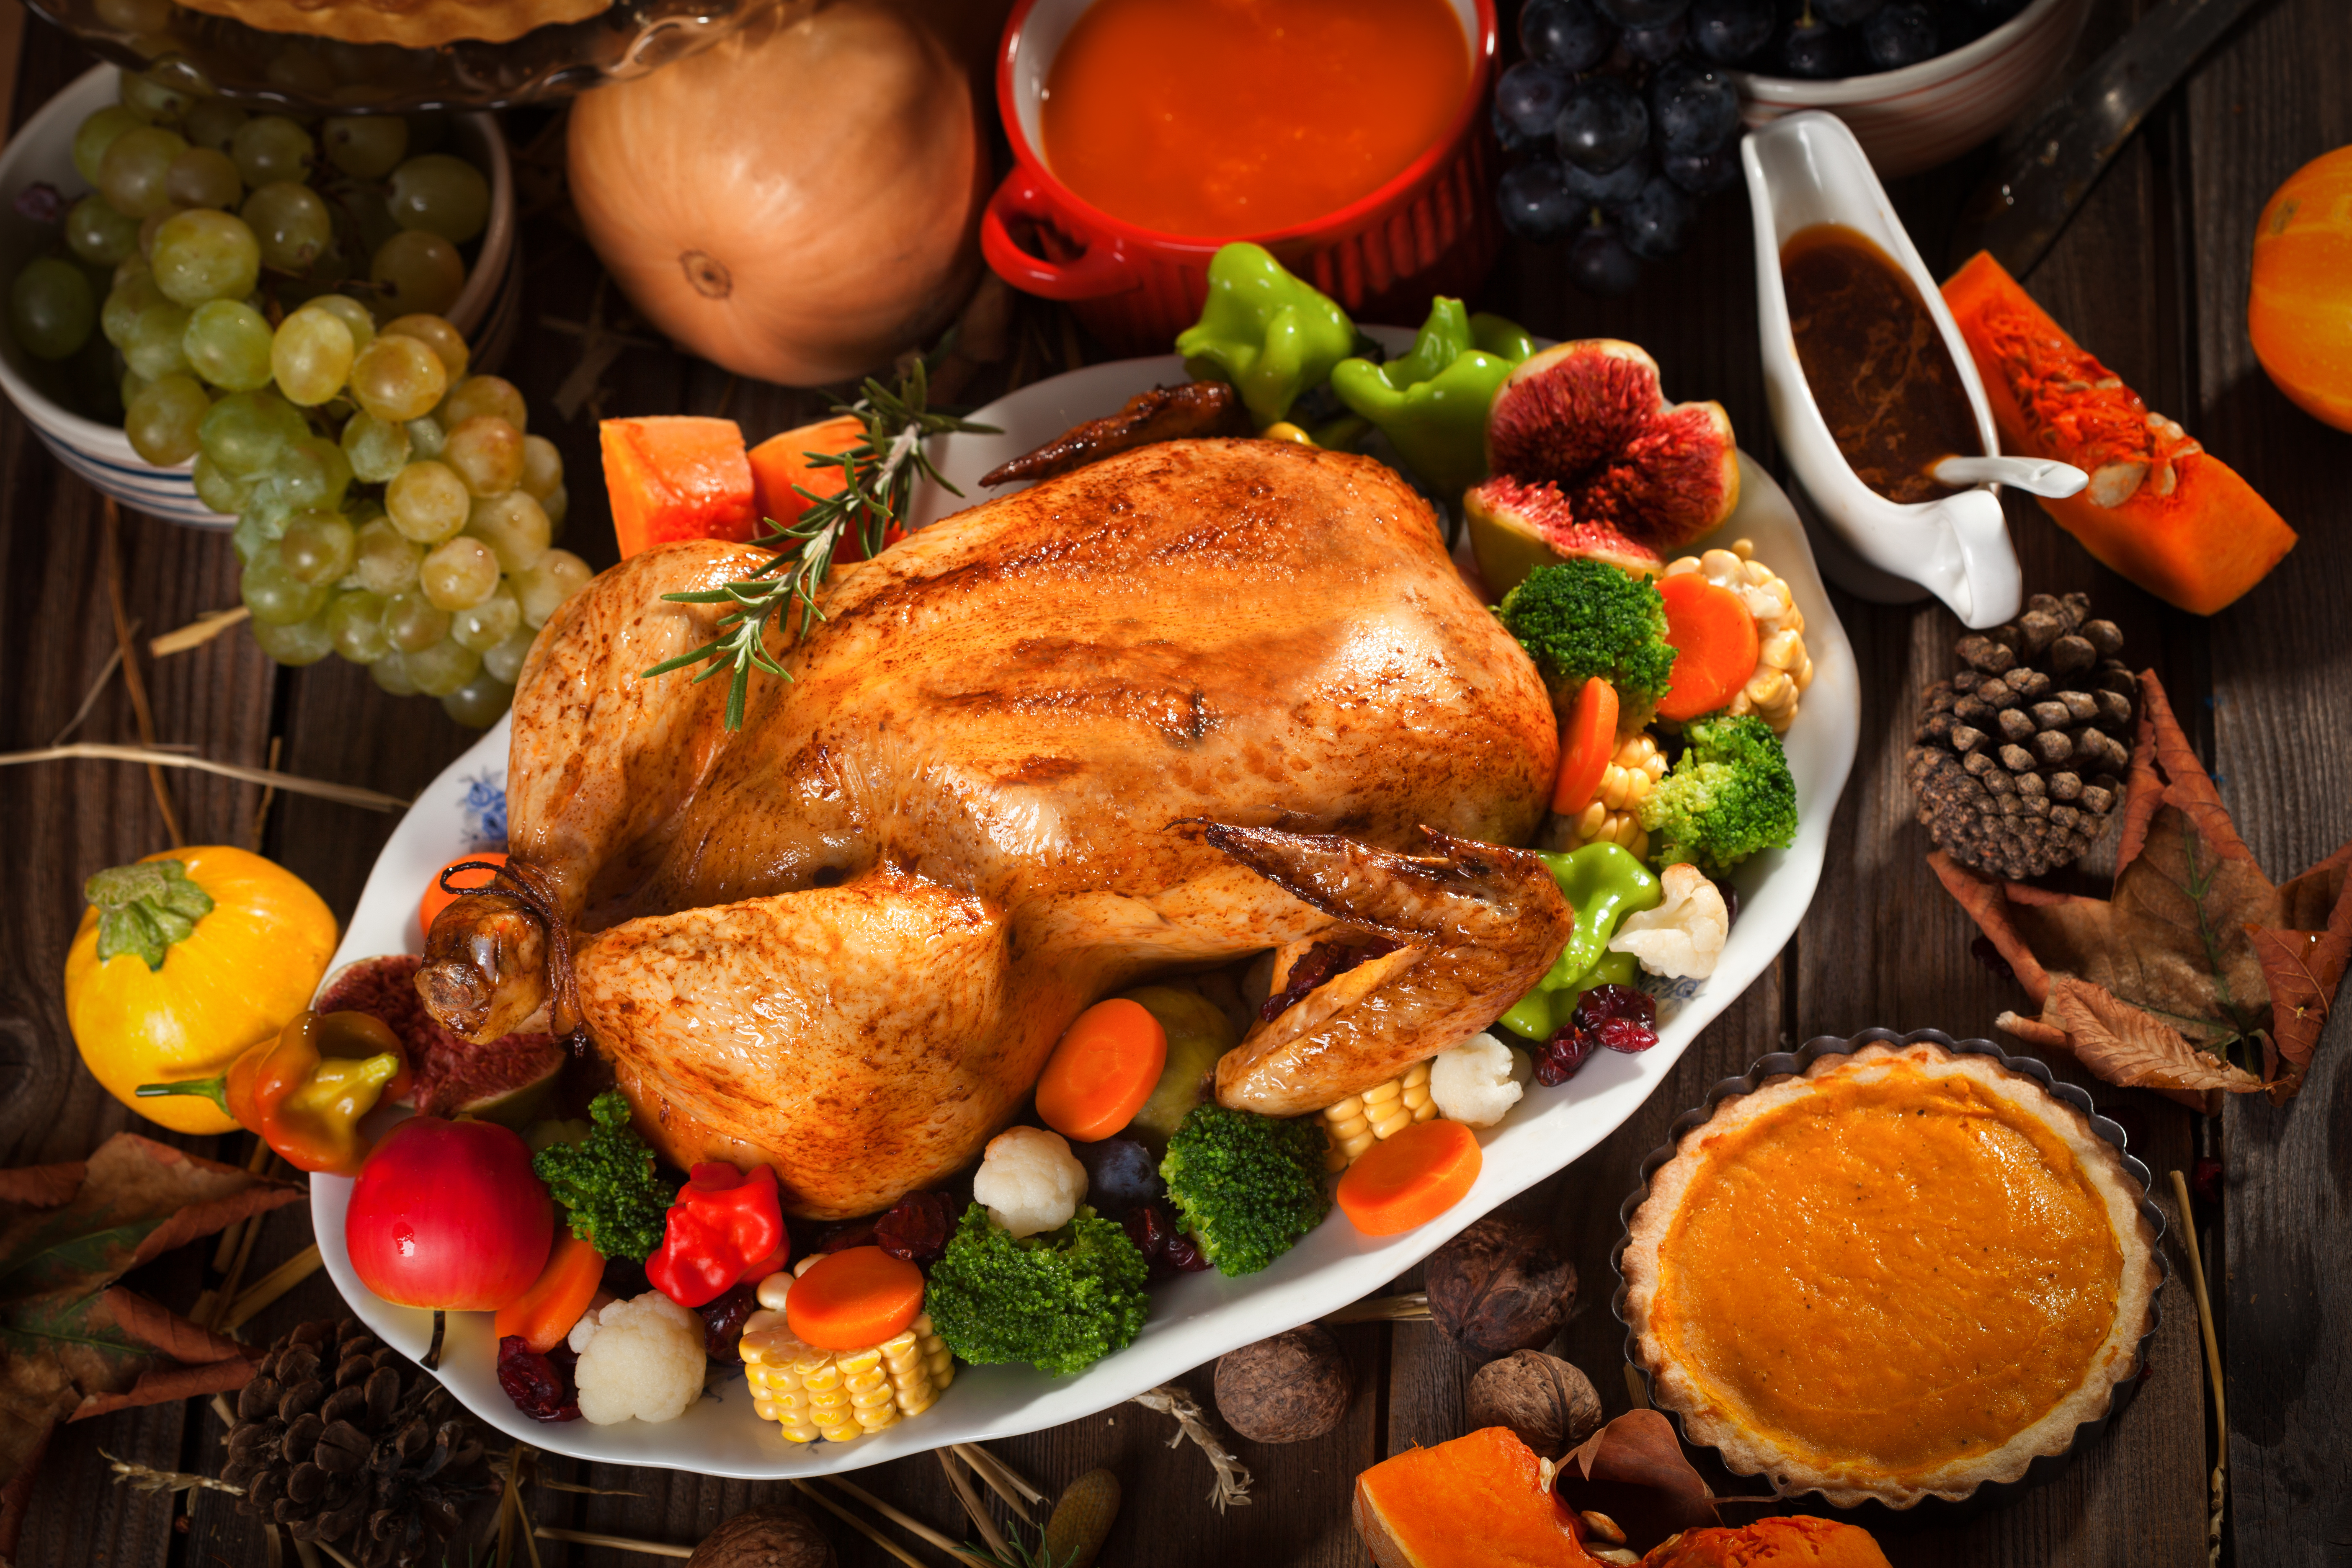 A PET-FRIENDLY AND ECO-FRIENDLY THANKSGIVING